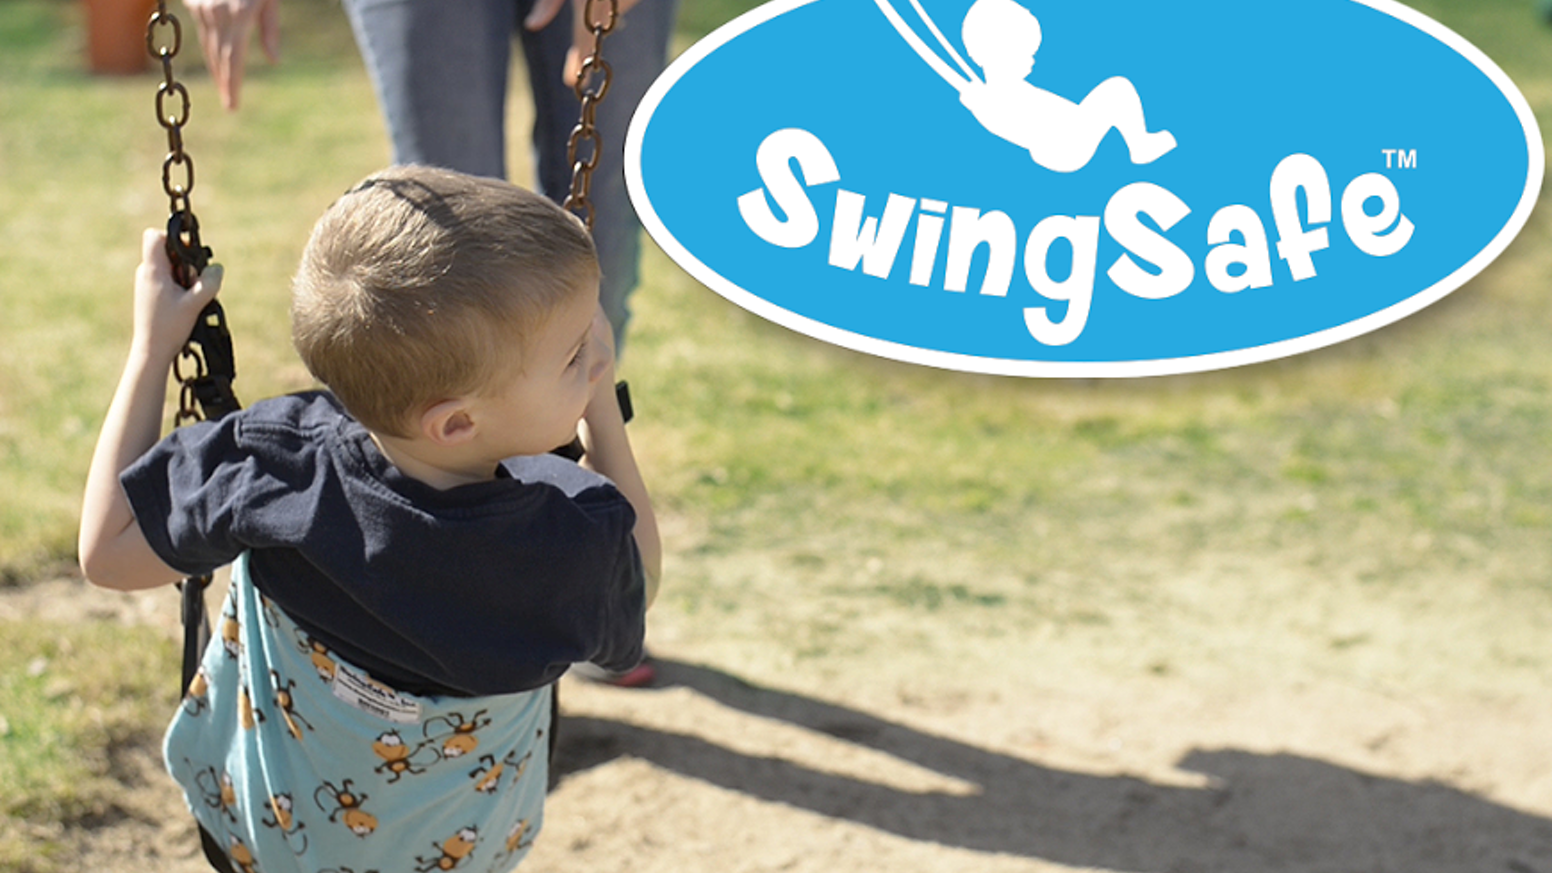 The SwingSafe can create a safer, more enjoyable swinging experience for a child at home or at the playground.  For sale now on the SwingSafe2go website.